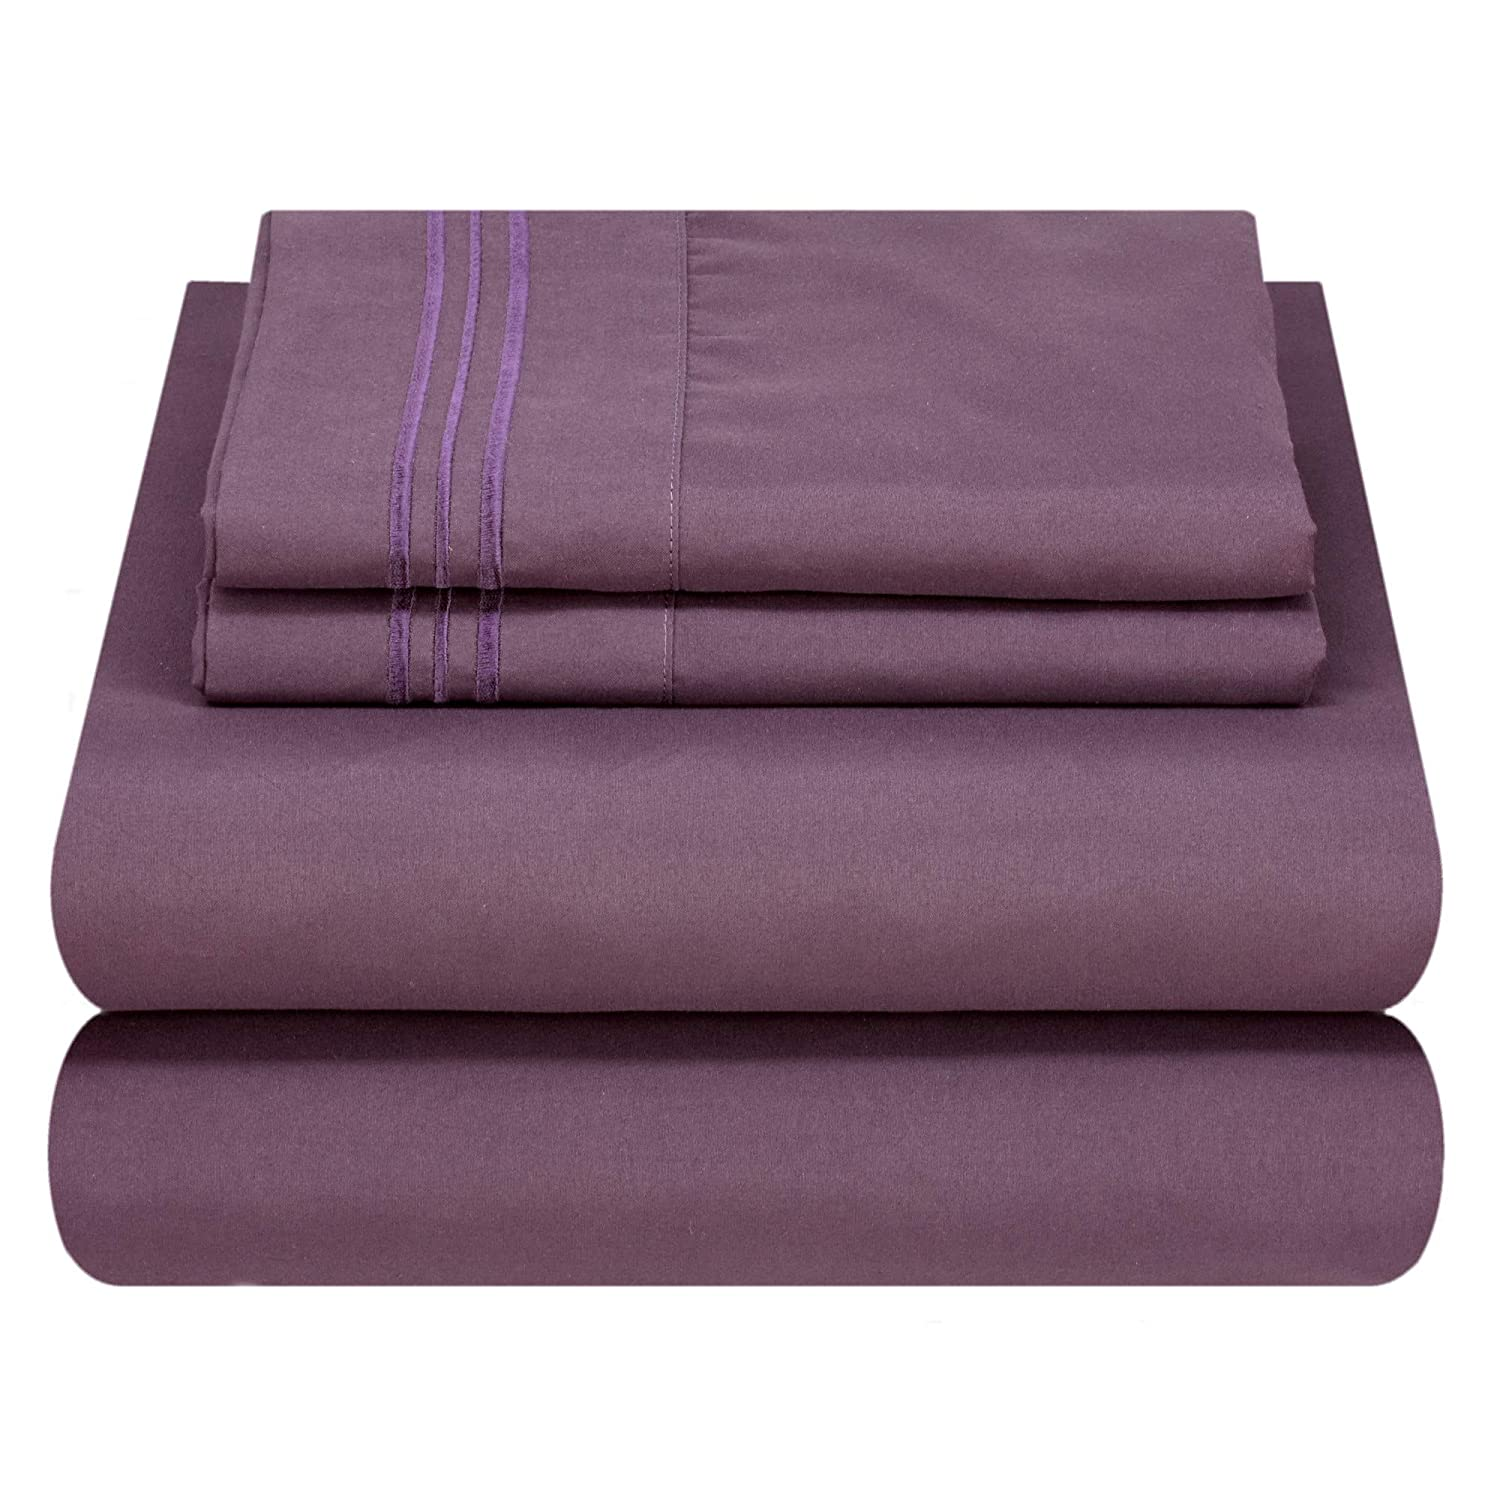 Mezzati Luxury Bed Sheet Set - Soft and Comfortable 1800 Prestige Collection - Brushed Microfiber Bedding (Purple, Queen Size)